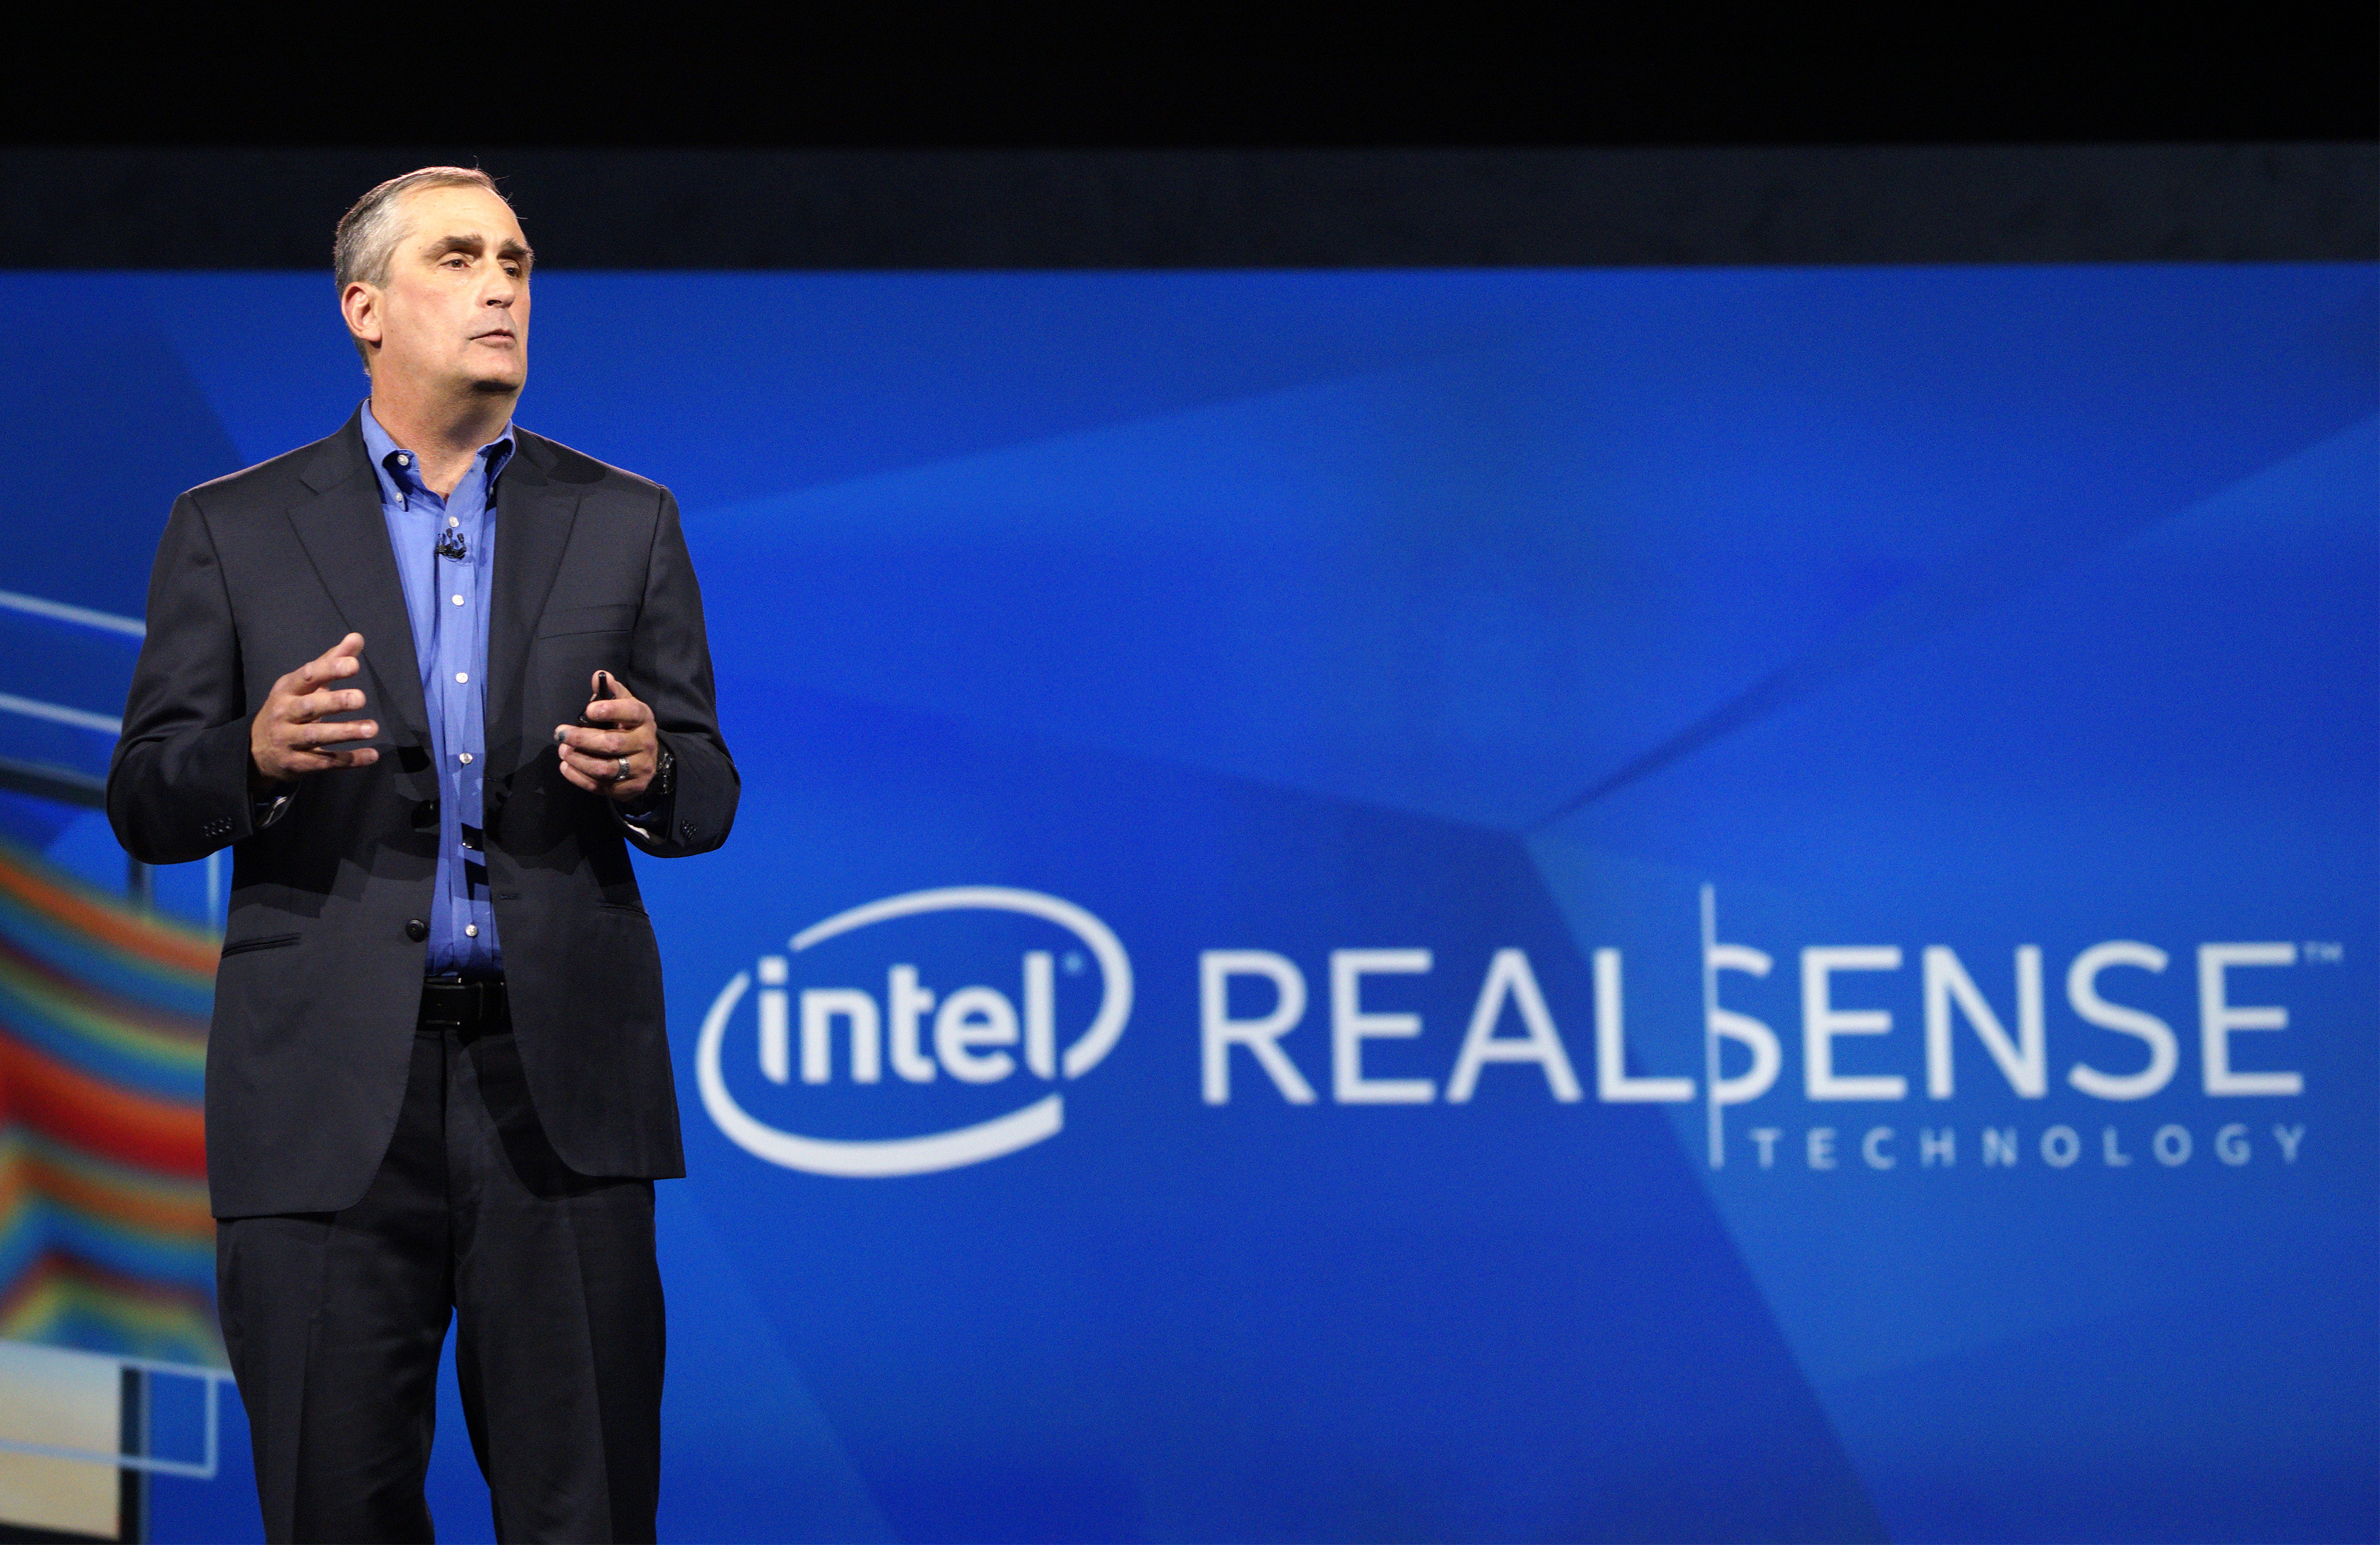 Brian Krzanich, CEO of Intel, talks about the company's RealSense camera technology at his keynote at the International Consumer Electronics show (CES) in Las Vegas, Nevada January 6, 2015.